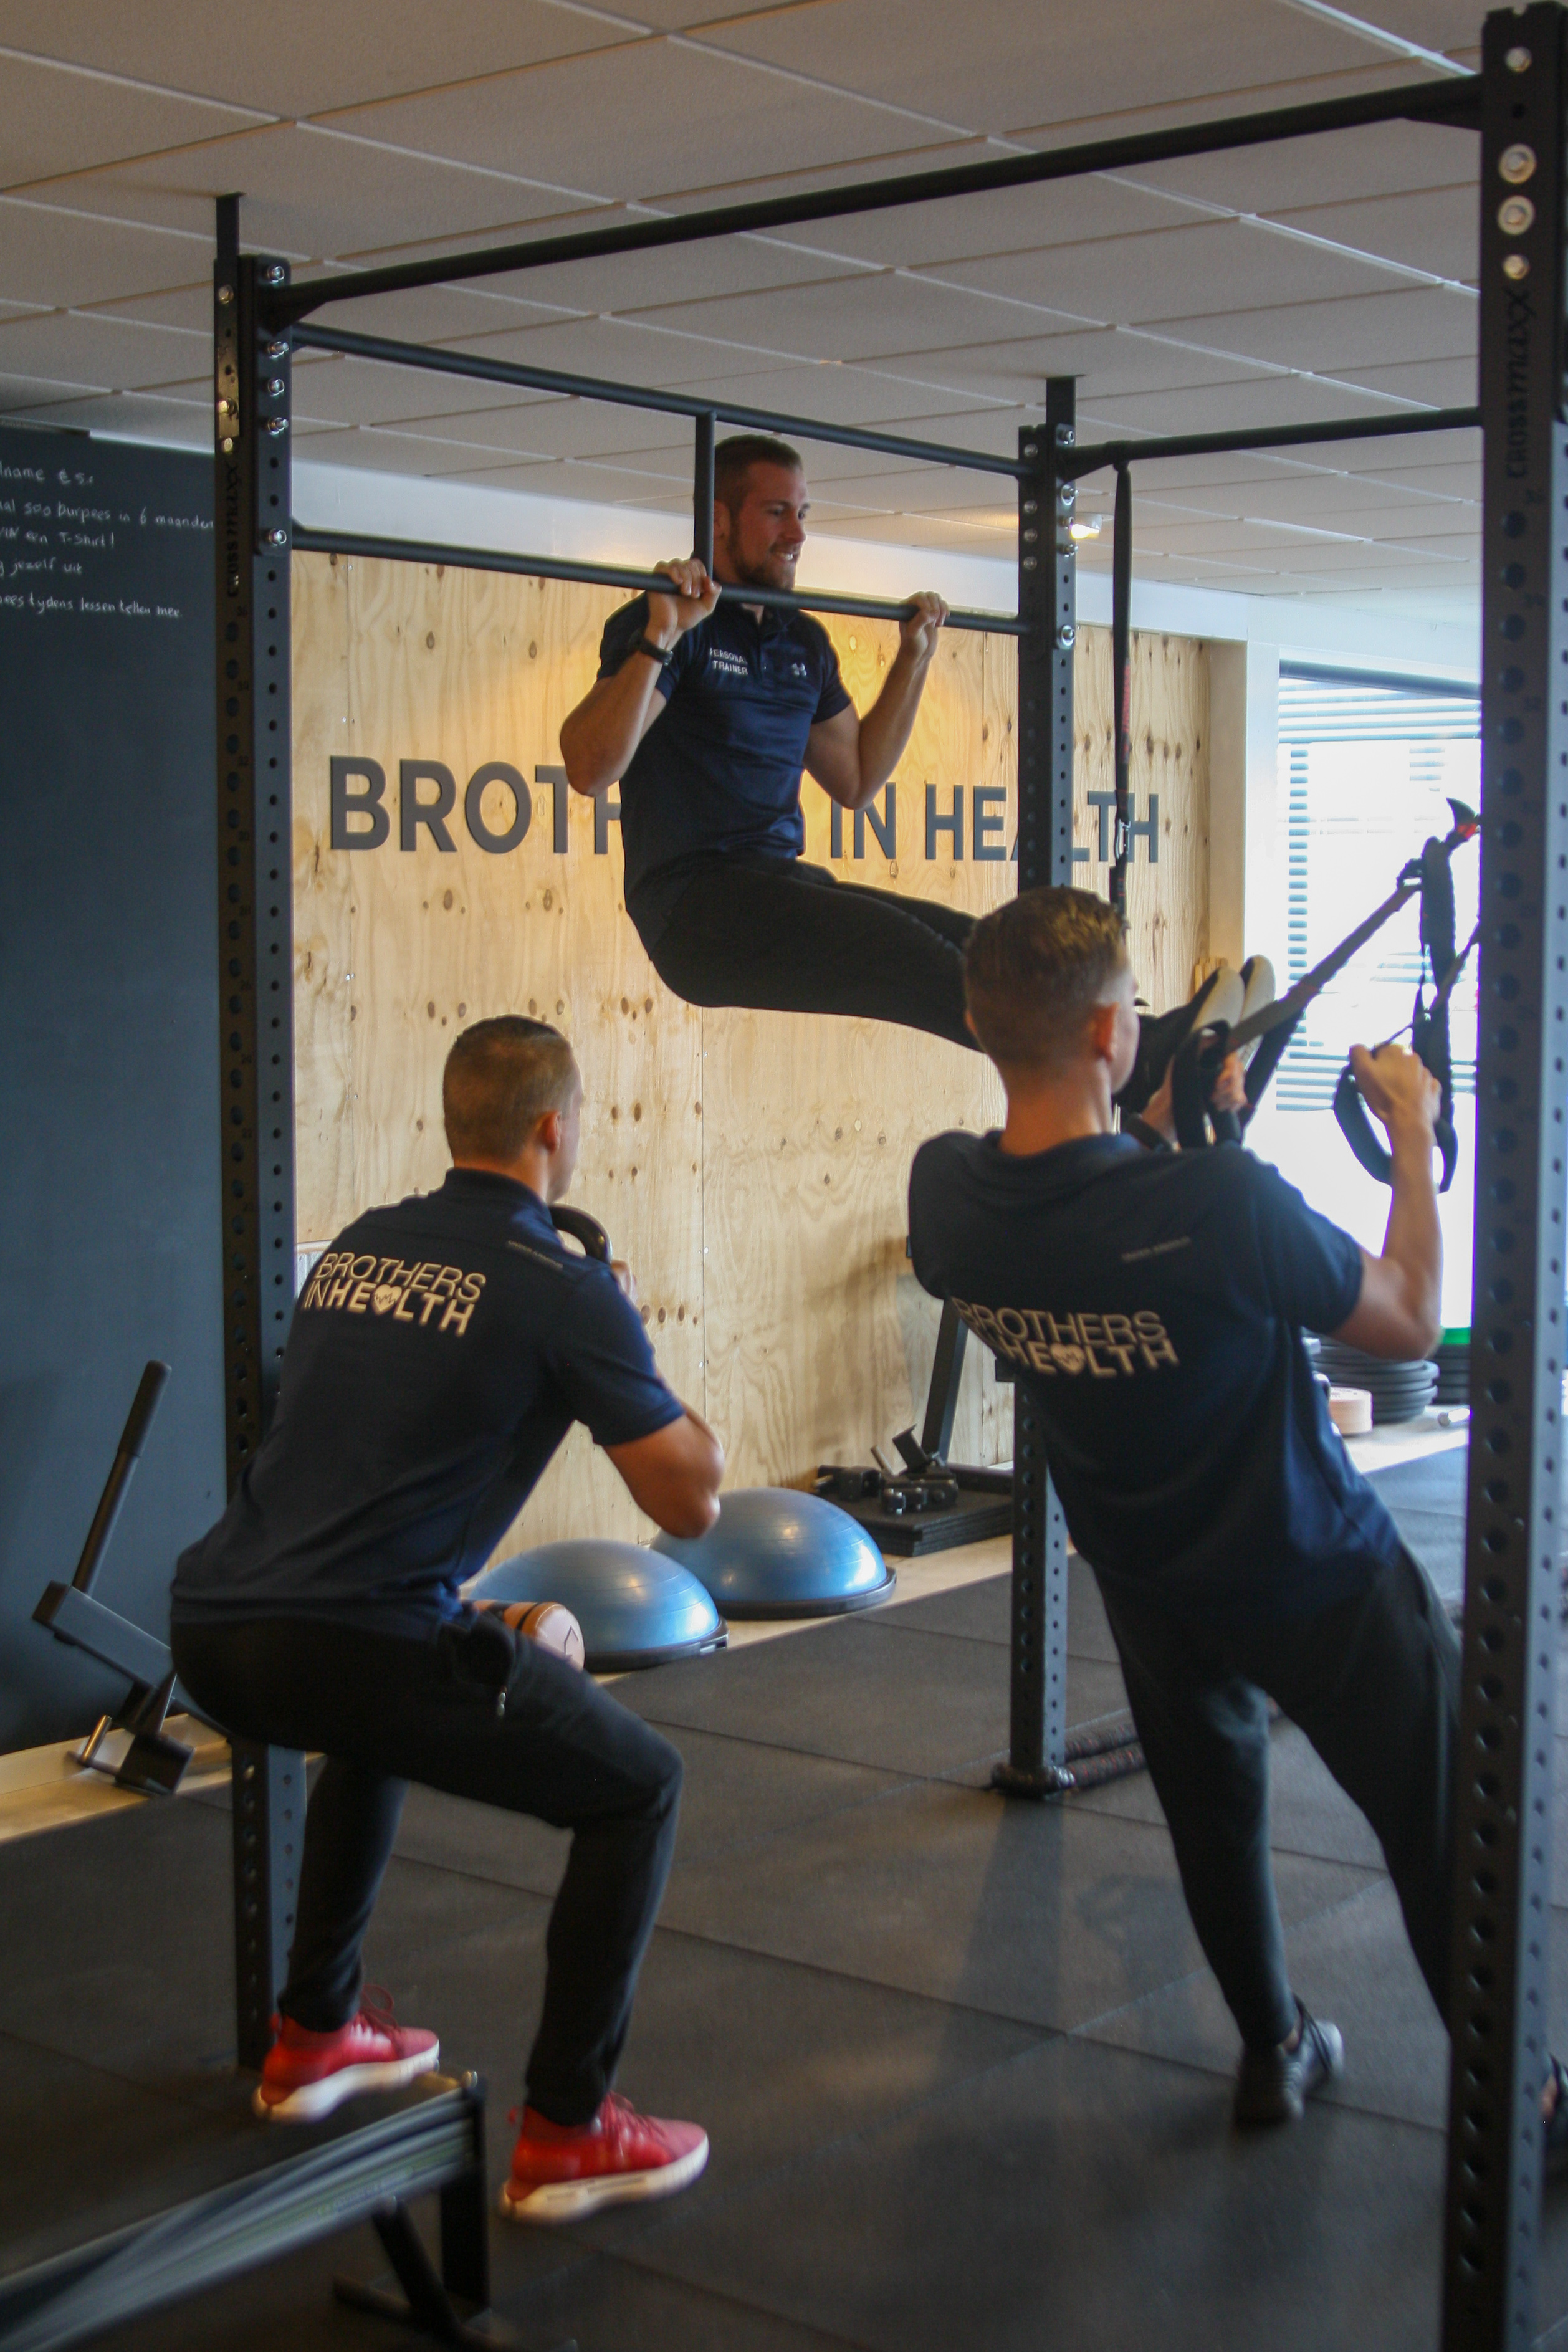 Trainingsaanbod Brothers in Health Kaatsheuvel